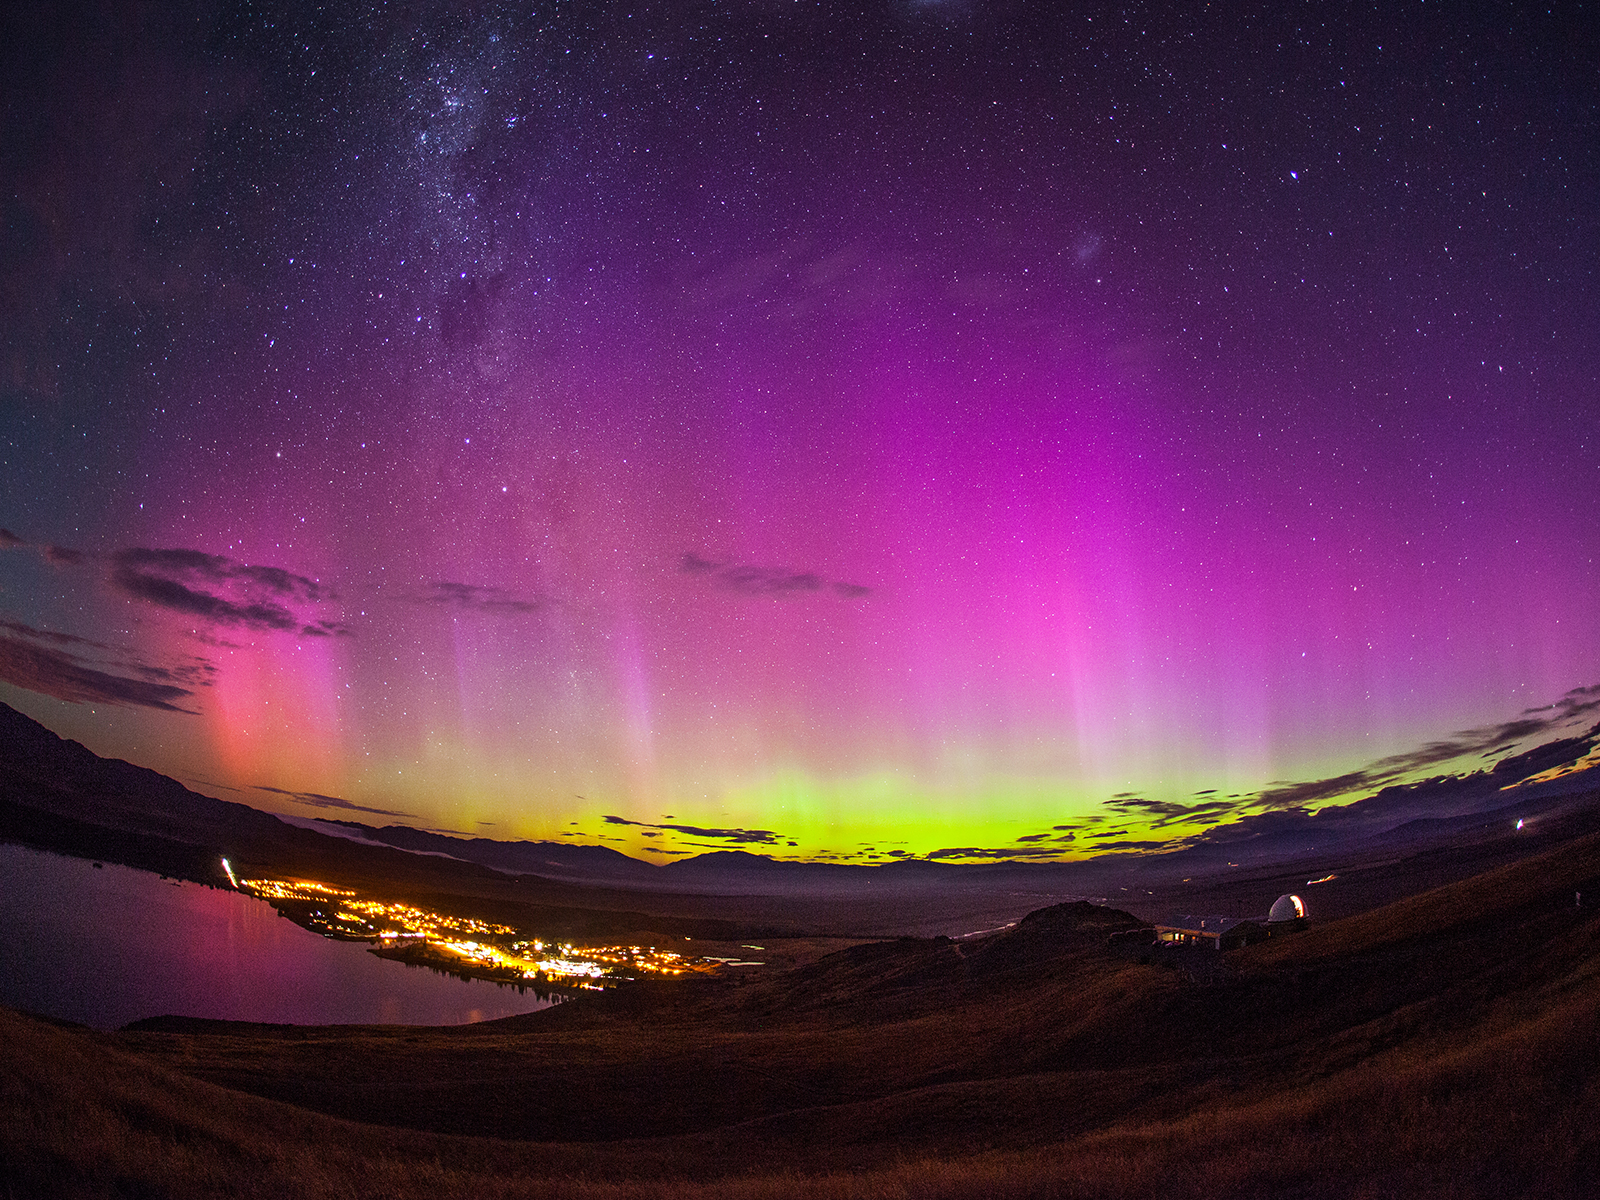 Keen stargazers will see amazing constellations that can only be seen in the southern hemisphere, including the Southern Cross, to the Magellanic Clouds and ...